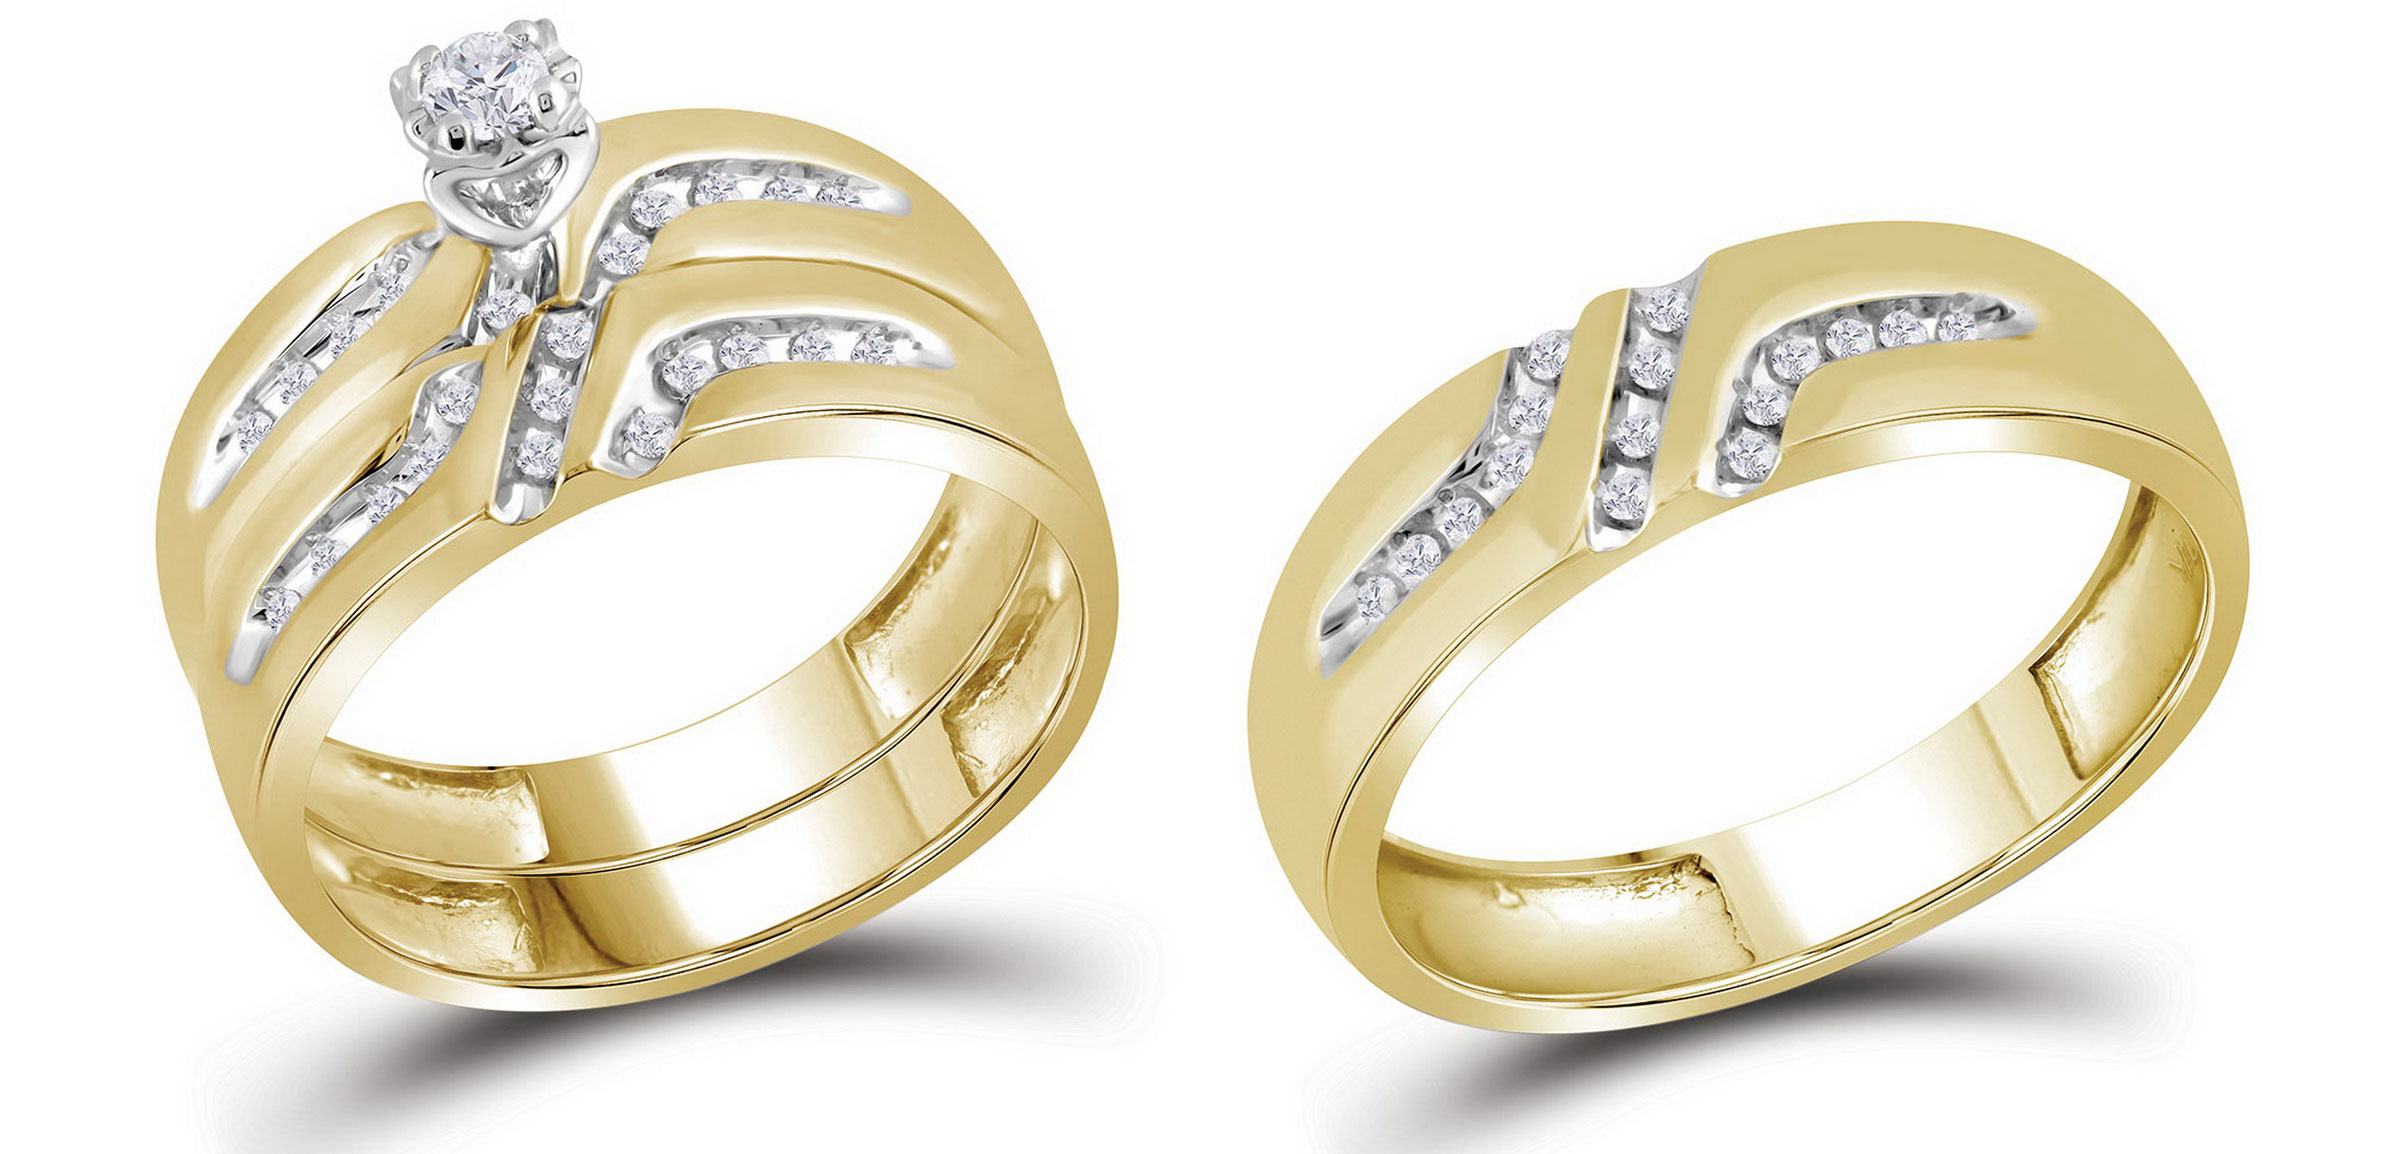 10kt Yellow Gold His & Hers Round Diamond Solitaire Matching Bridal Wedding Ring Band Set (.25 cttw.) by Mia Diamonds